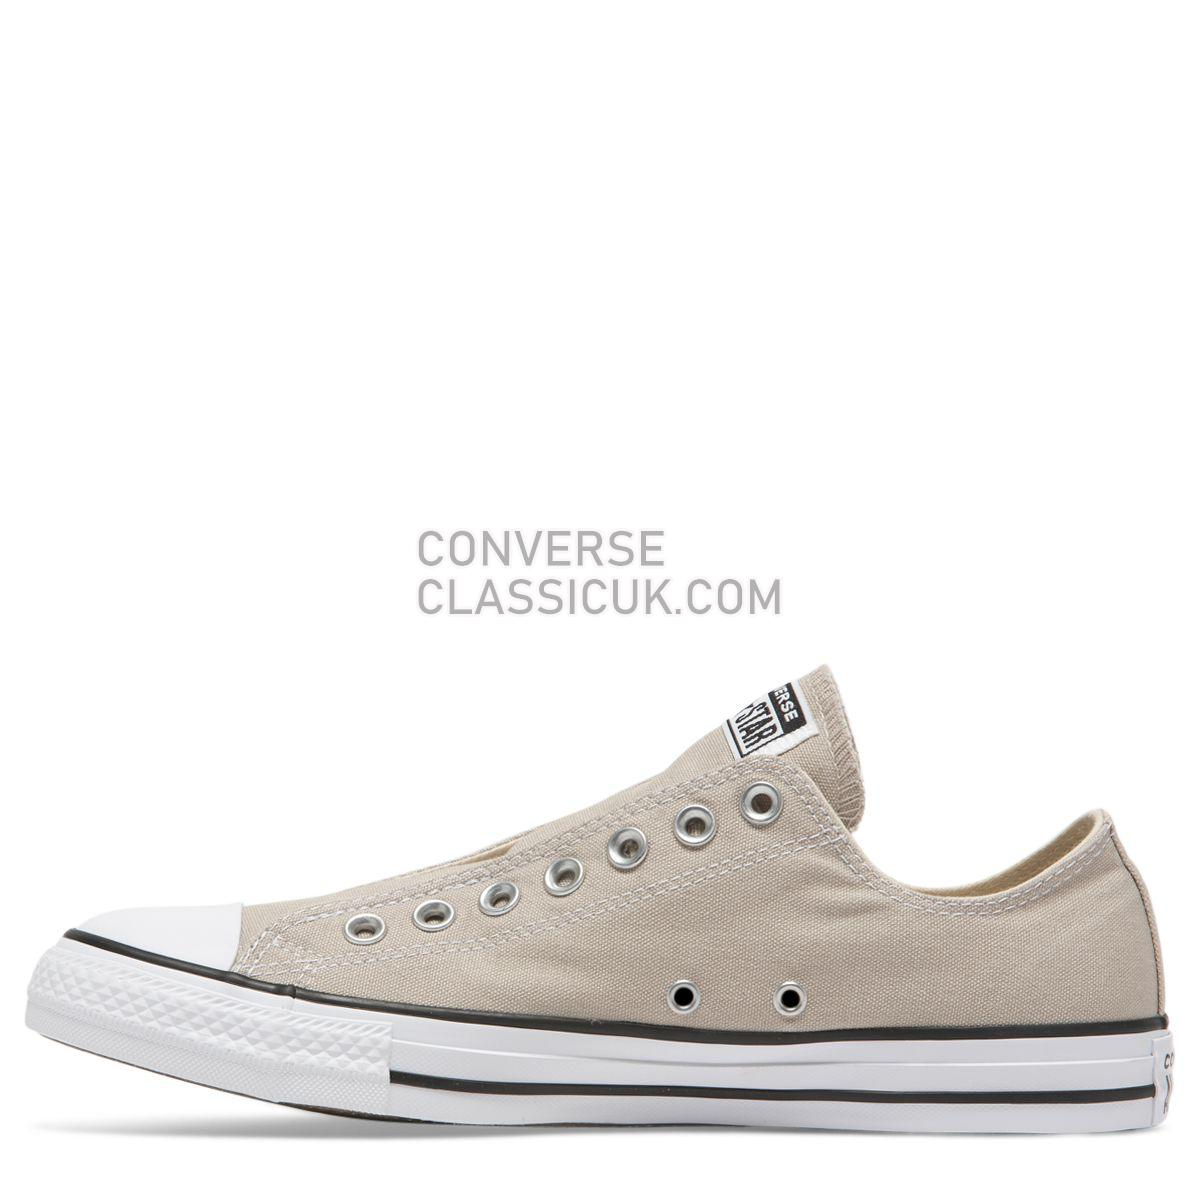 Converse Chuck Taylor All Star Seasonal Slip Low Top Papyrus Mens Womens Unisex 164302 Papyrus/White/Black Shoes